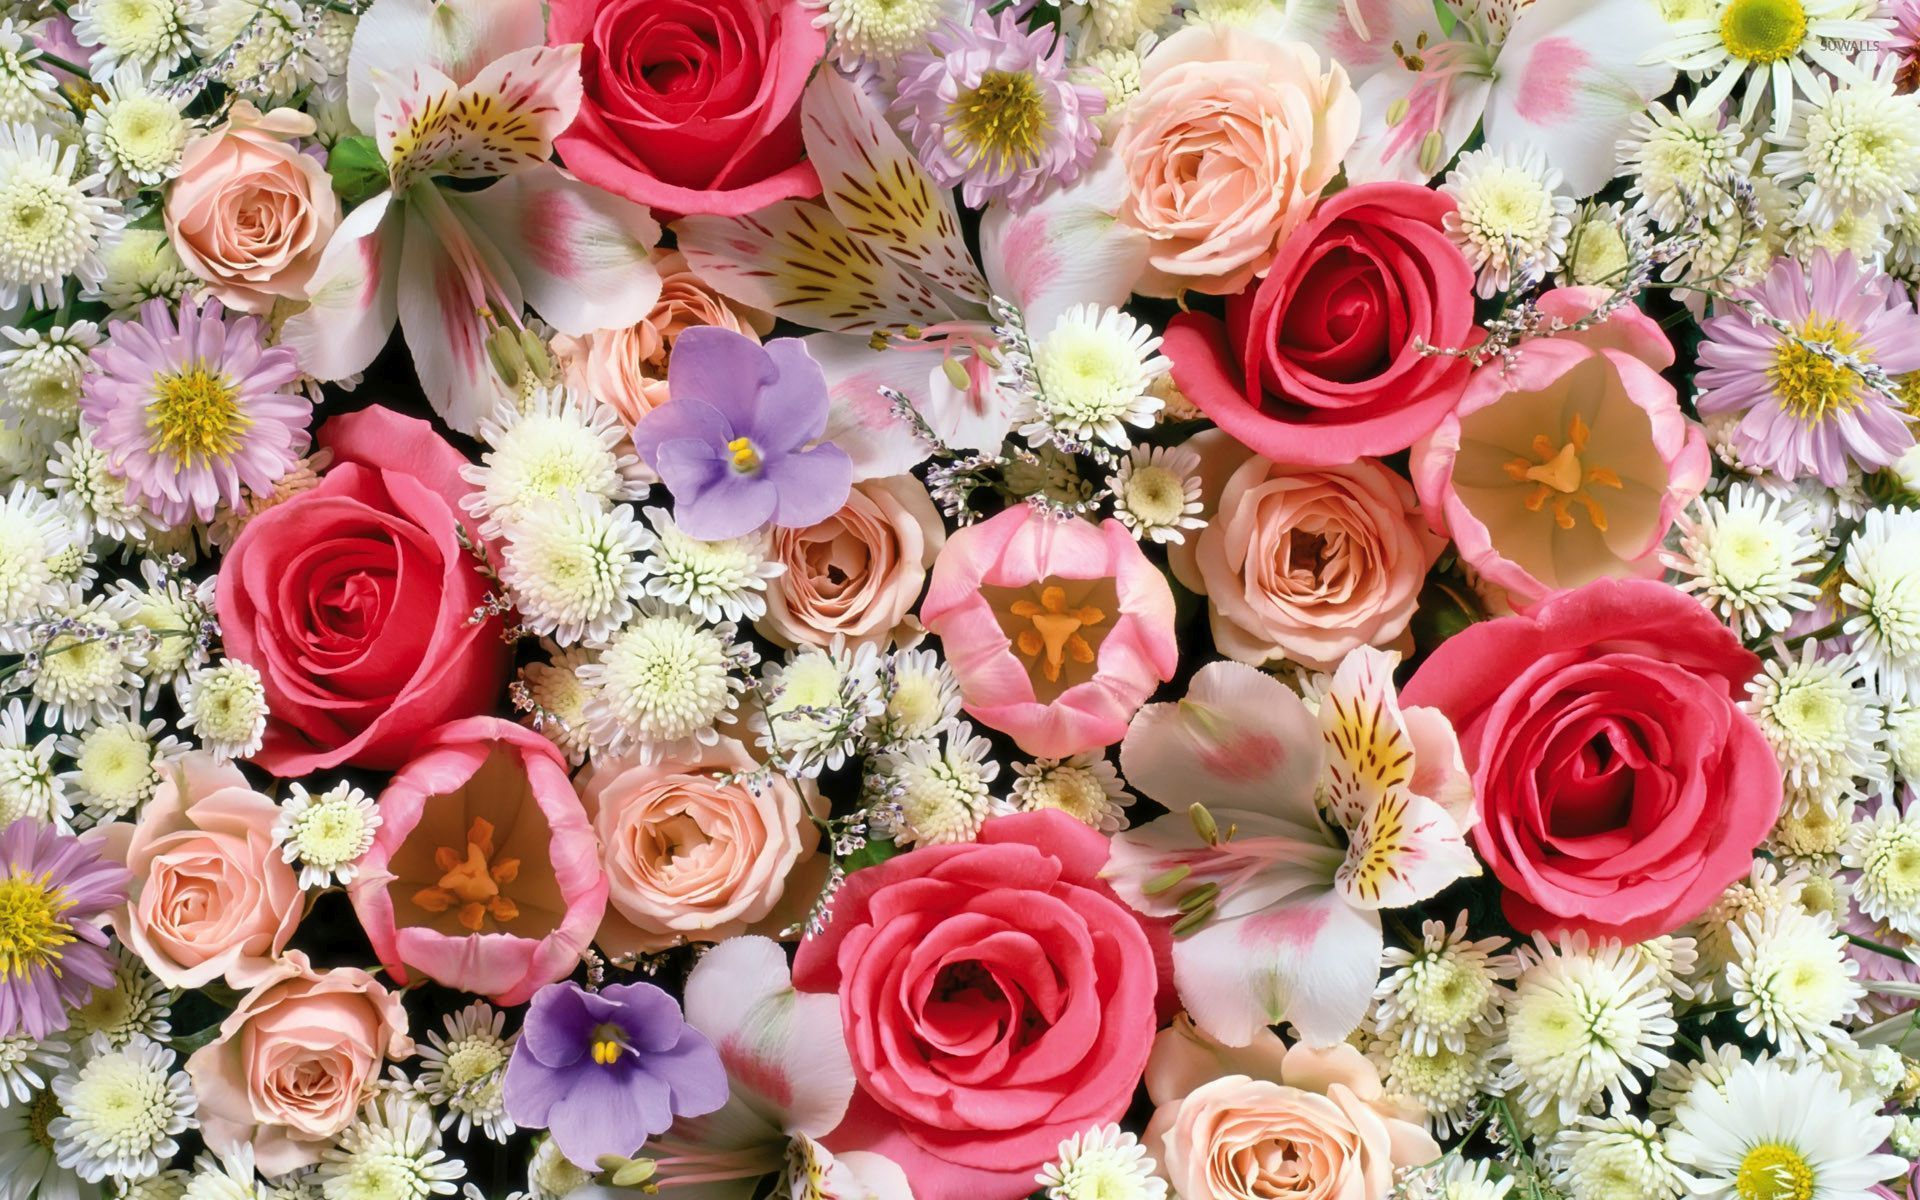 https://cdn.suwalls.com/wallpapers/flowers/colorful-roses-in-the-bouquet-53956-1920x1200.jpg